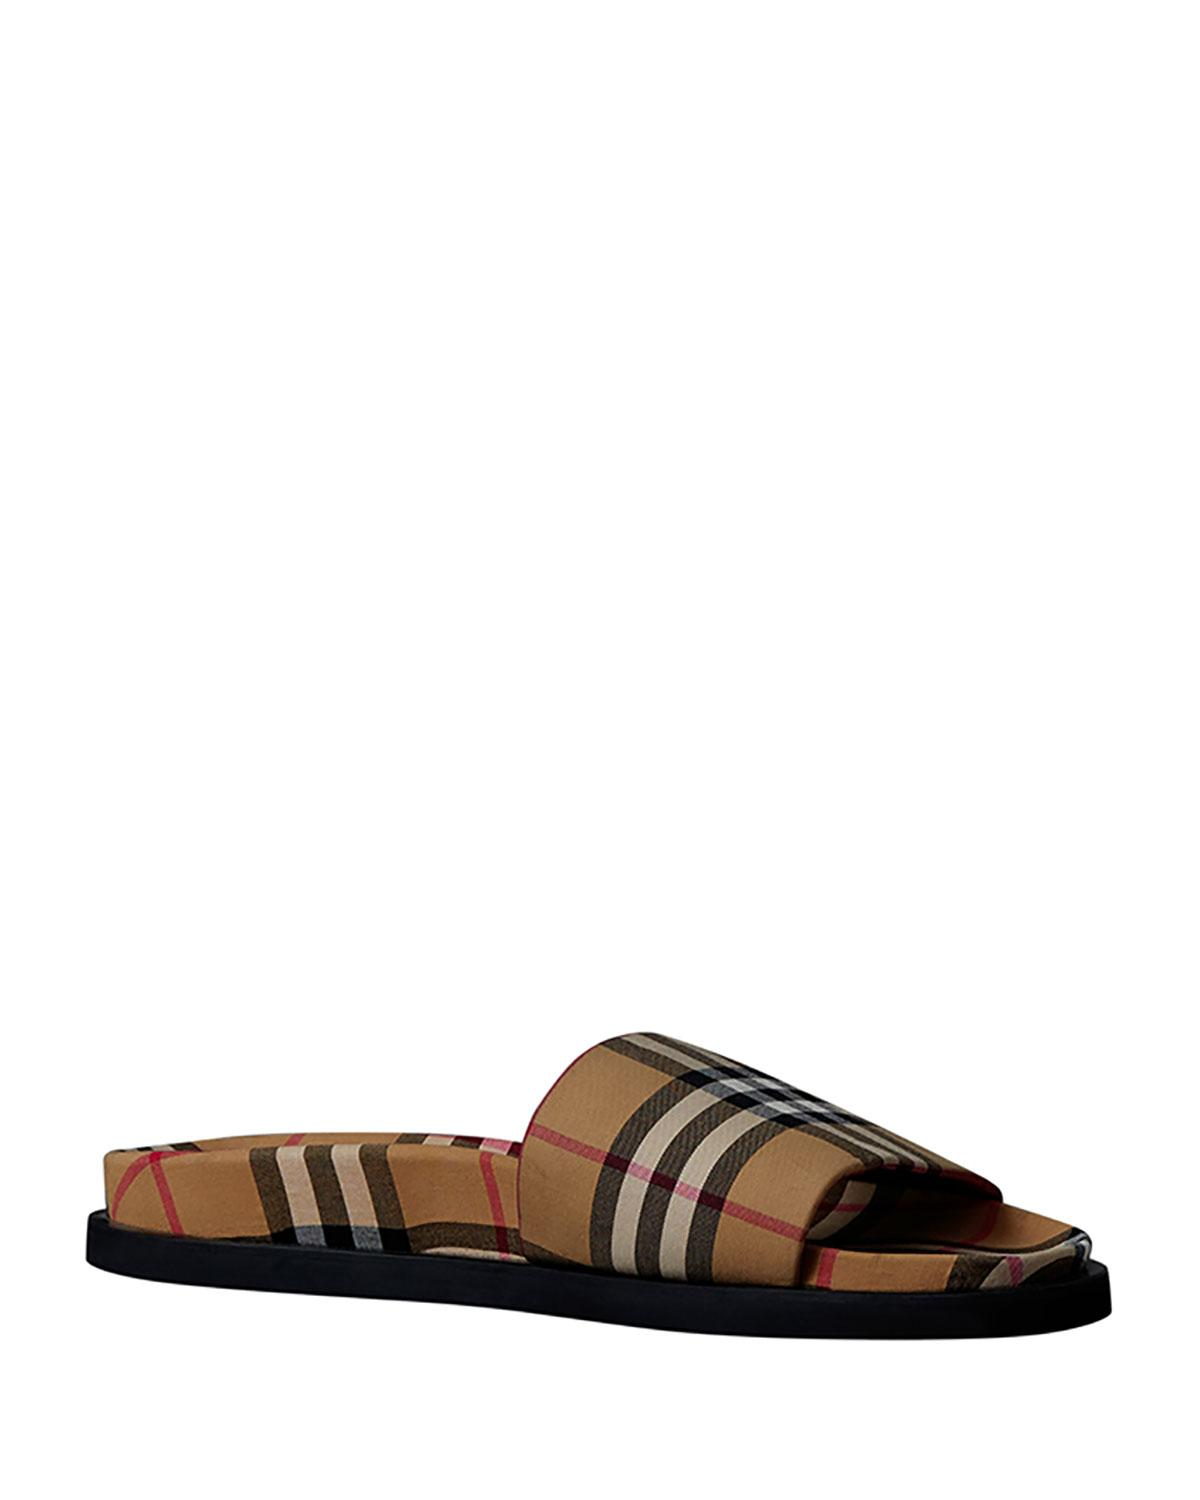 00ff8496119cc Burberry Men s Ashmore Check Slide Sandal in Yellow for Men - Lyst